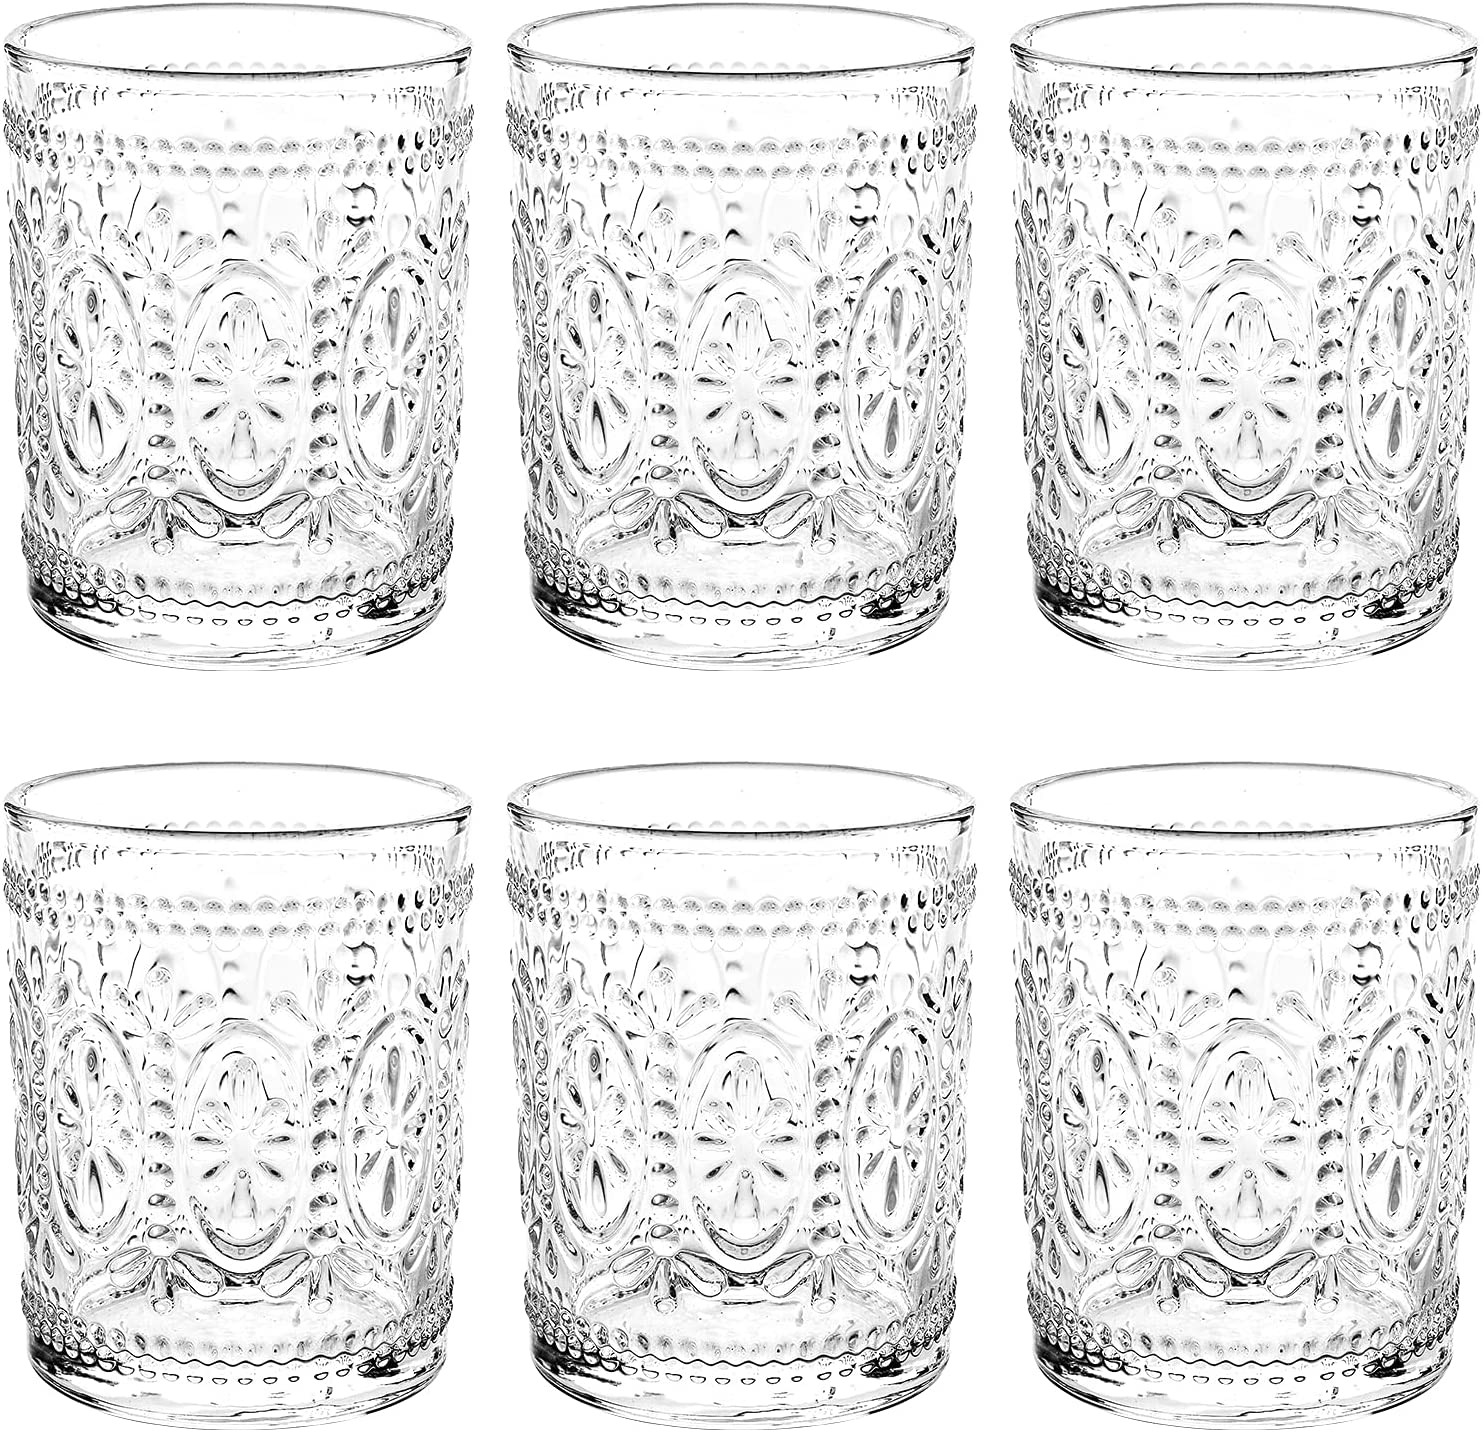 Bekith 6 Pack Drinking Glasses, 9.5 oz Romantic Water Glasses Tumblers, Heavy Duty Vintage Glassware Set for Whisky,Juice, Beverages, Beer, Cocktail